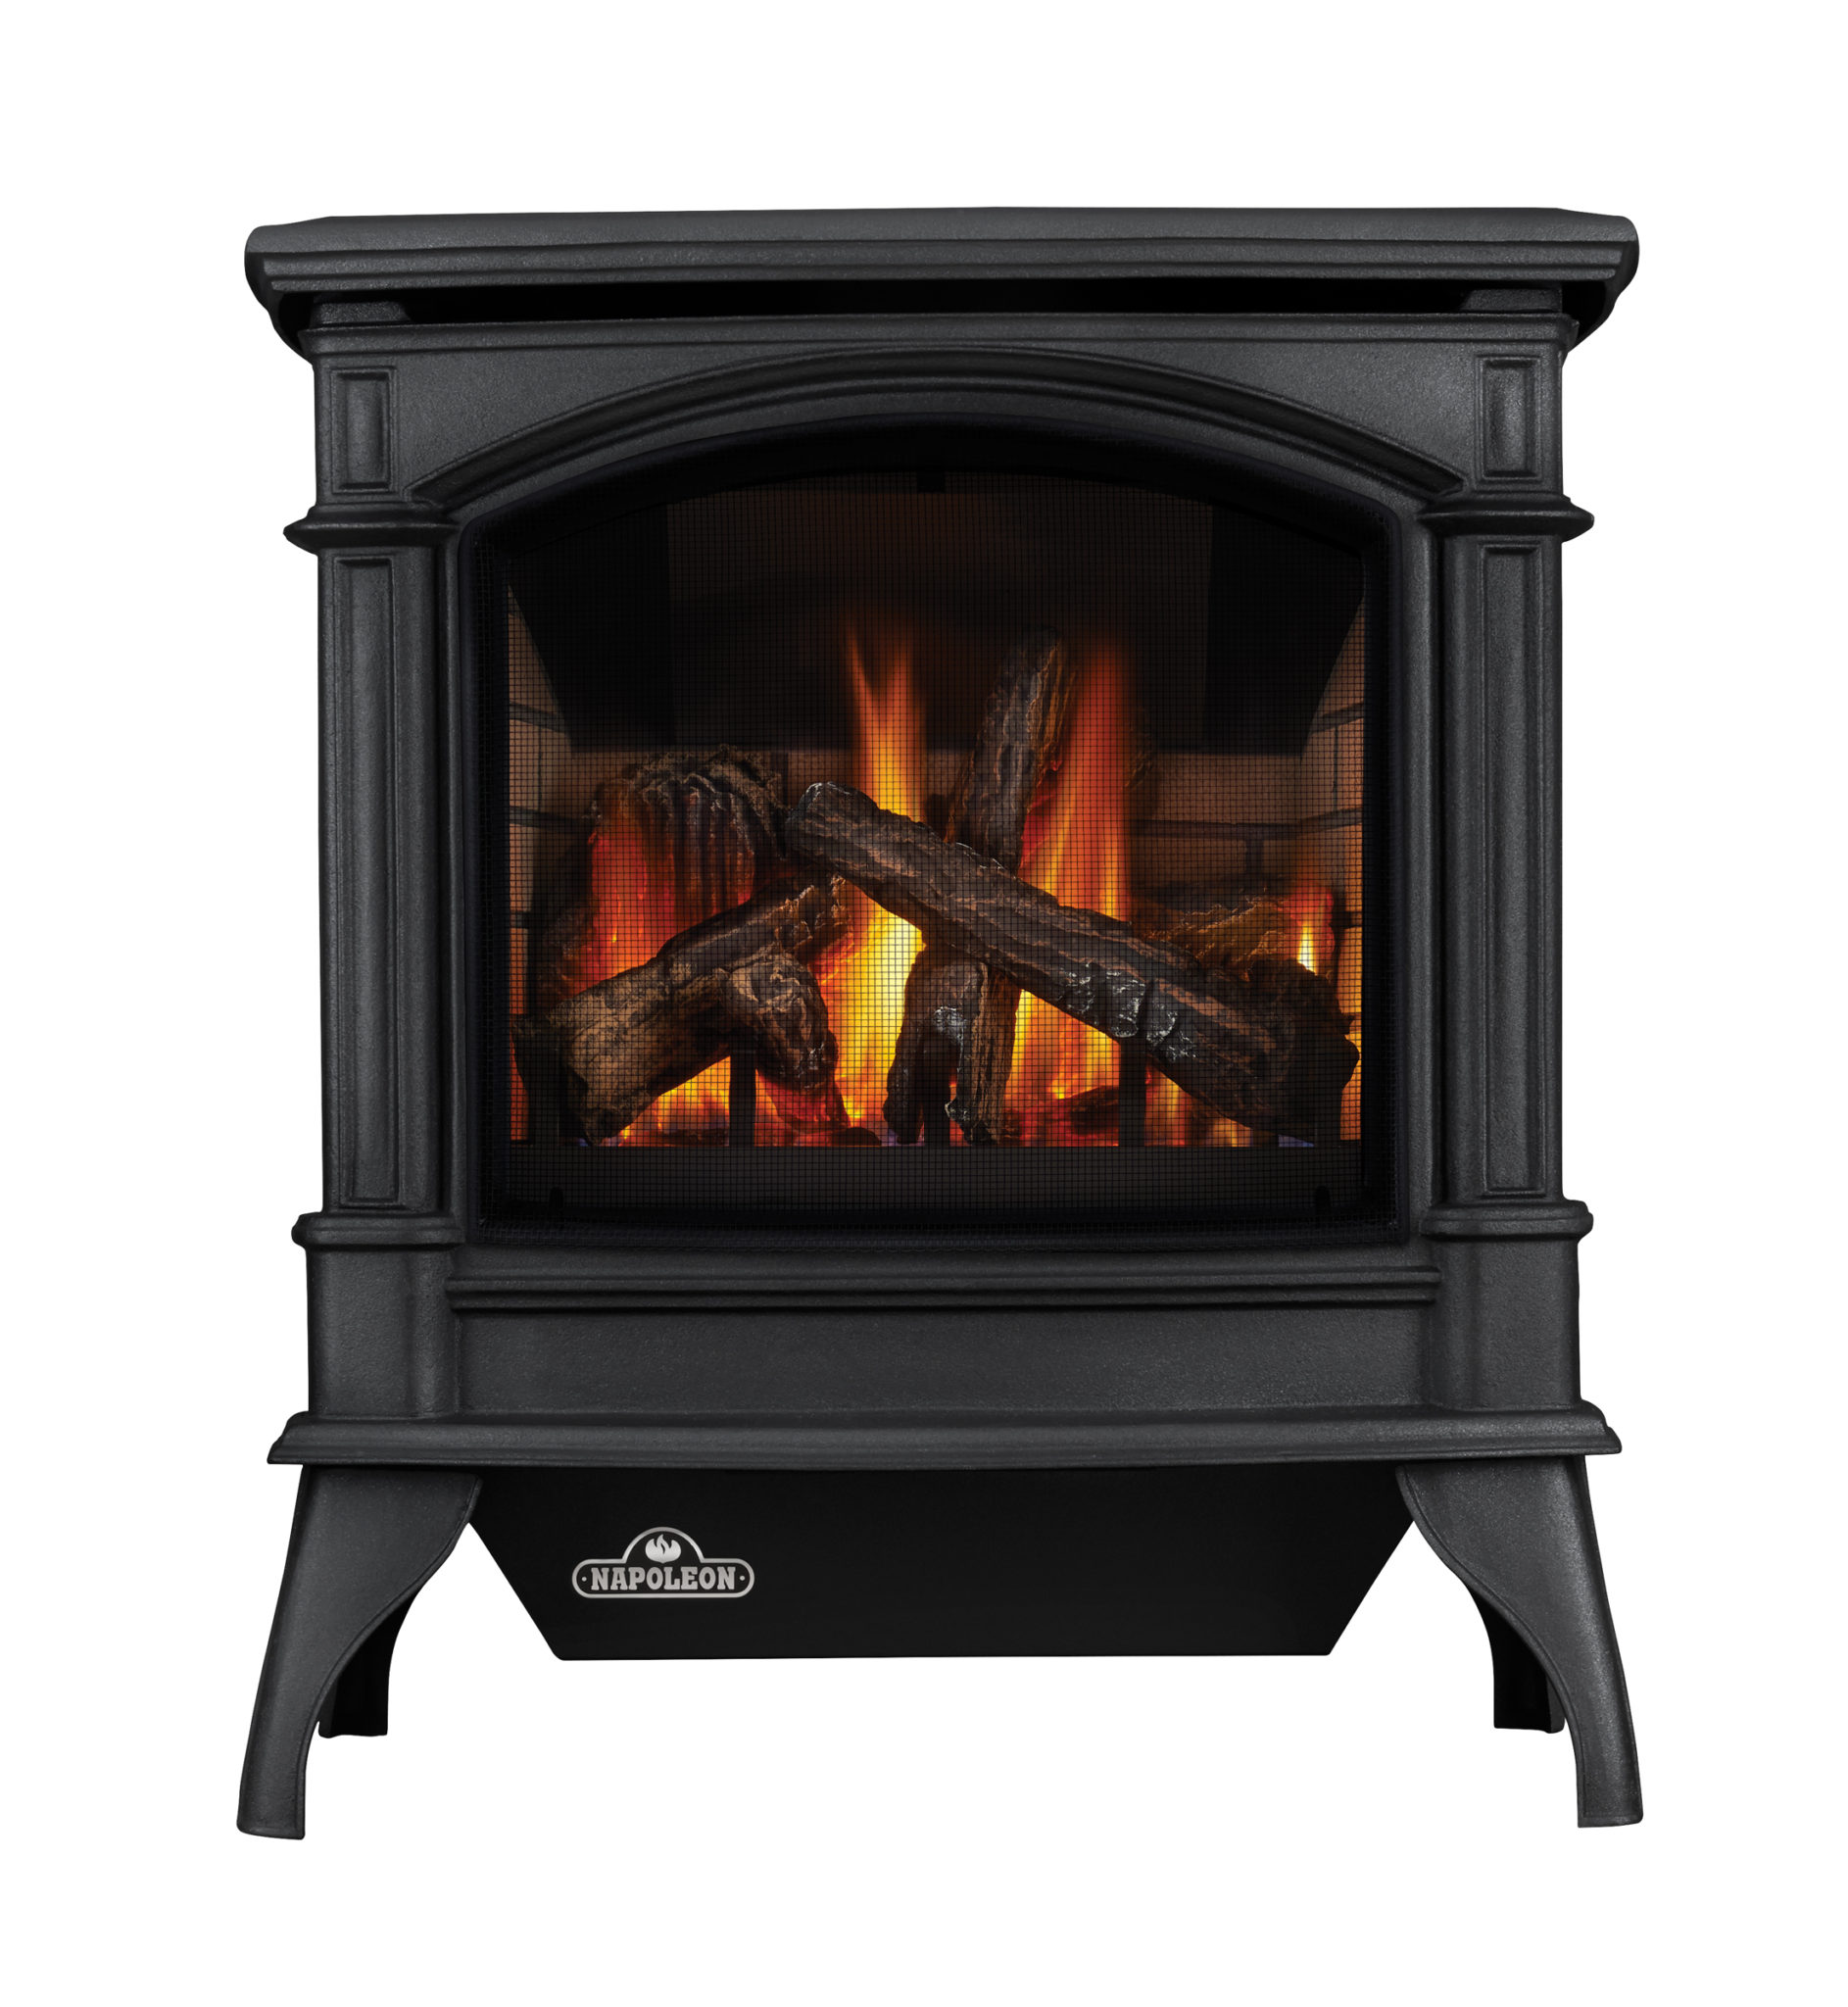 Napoleon Knightsbridge Direct Vent Gas Stove